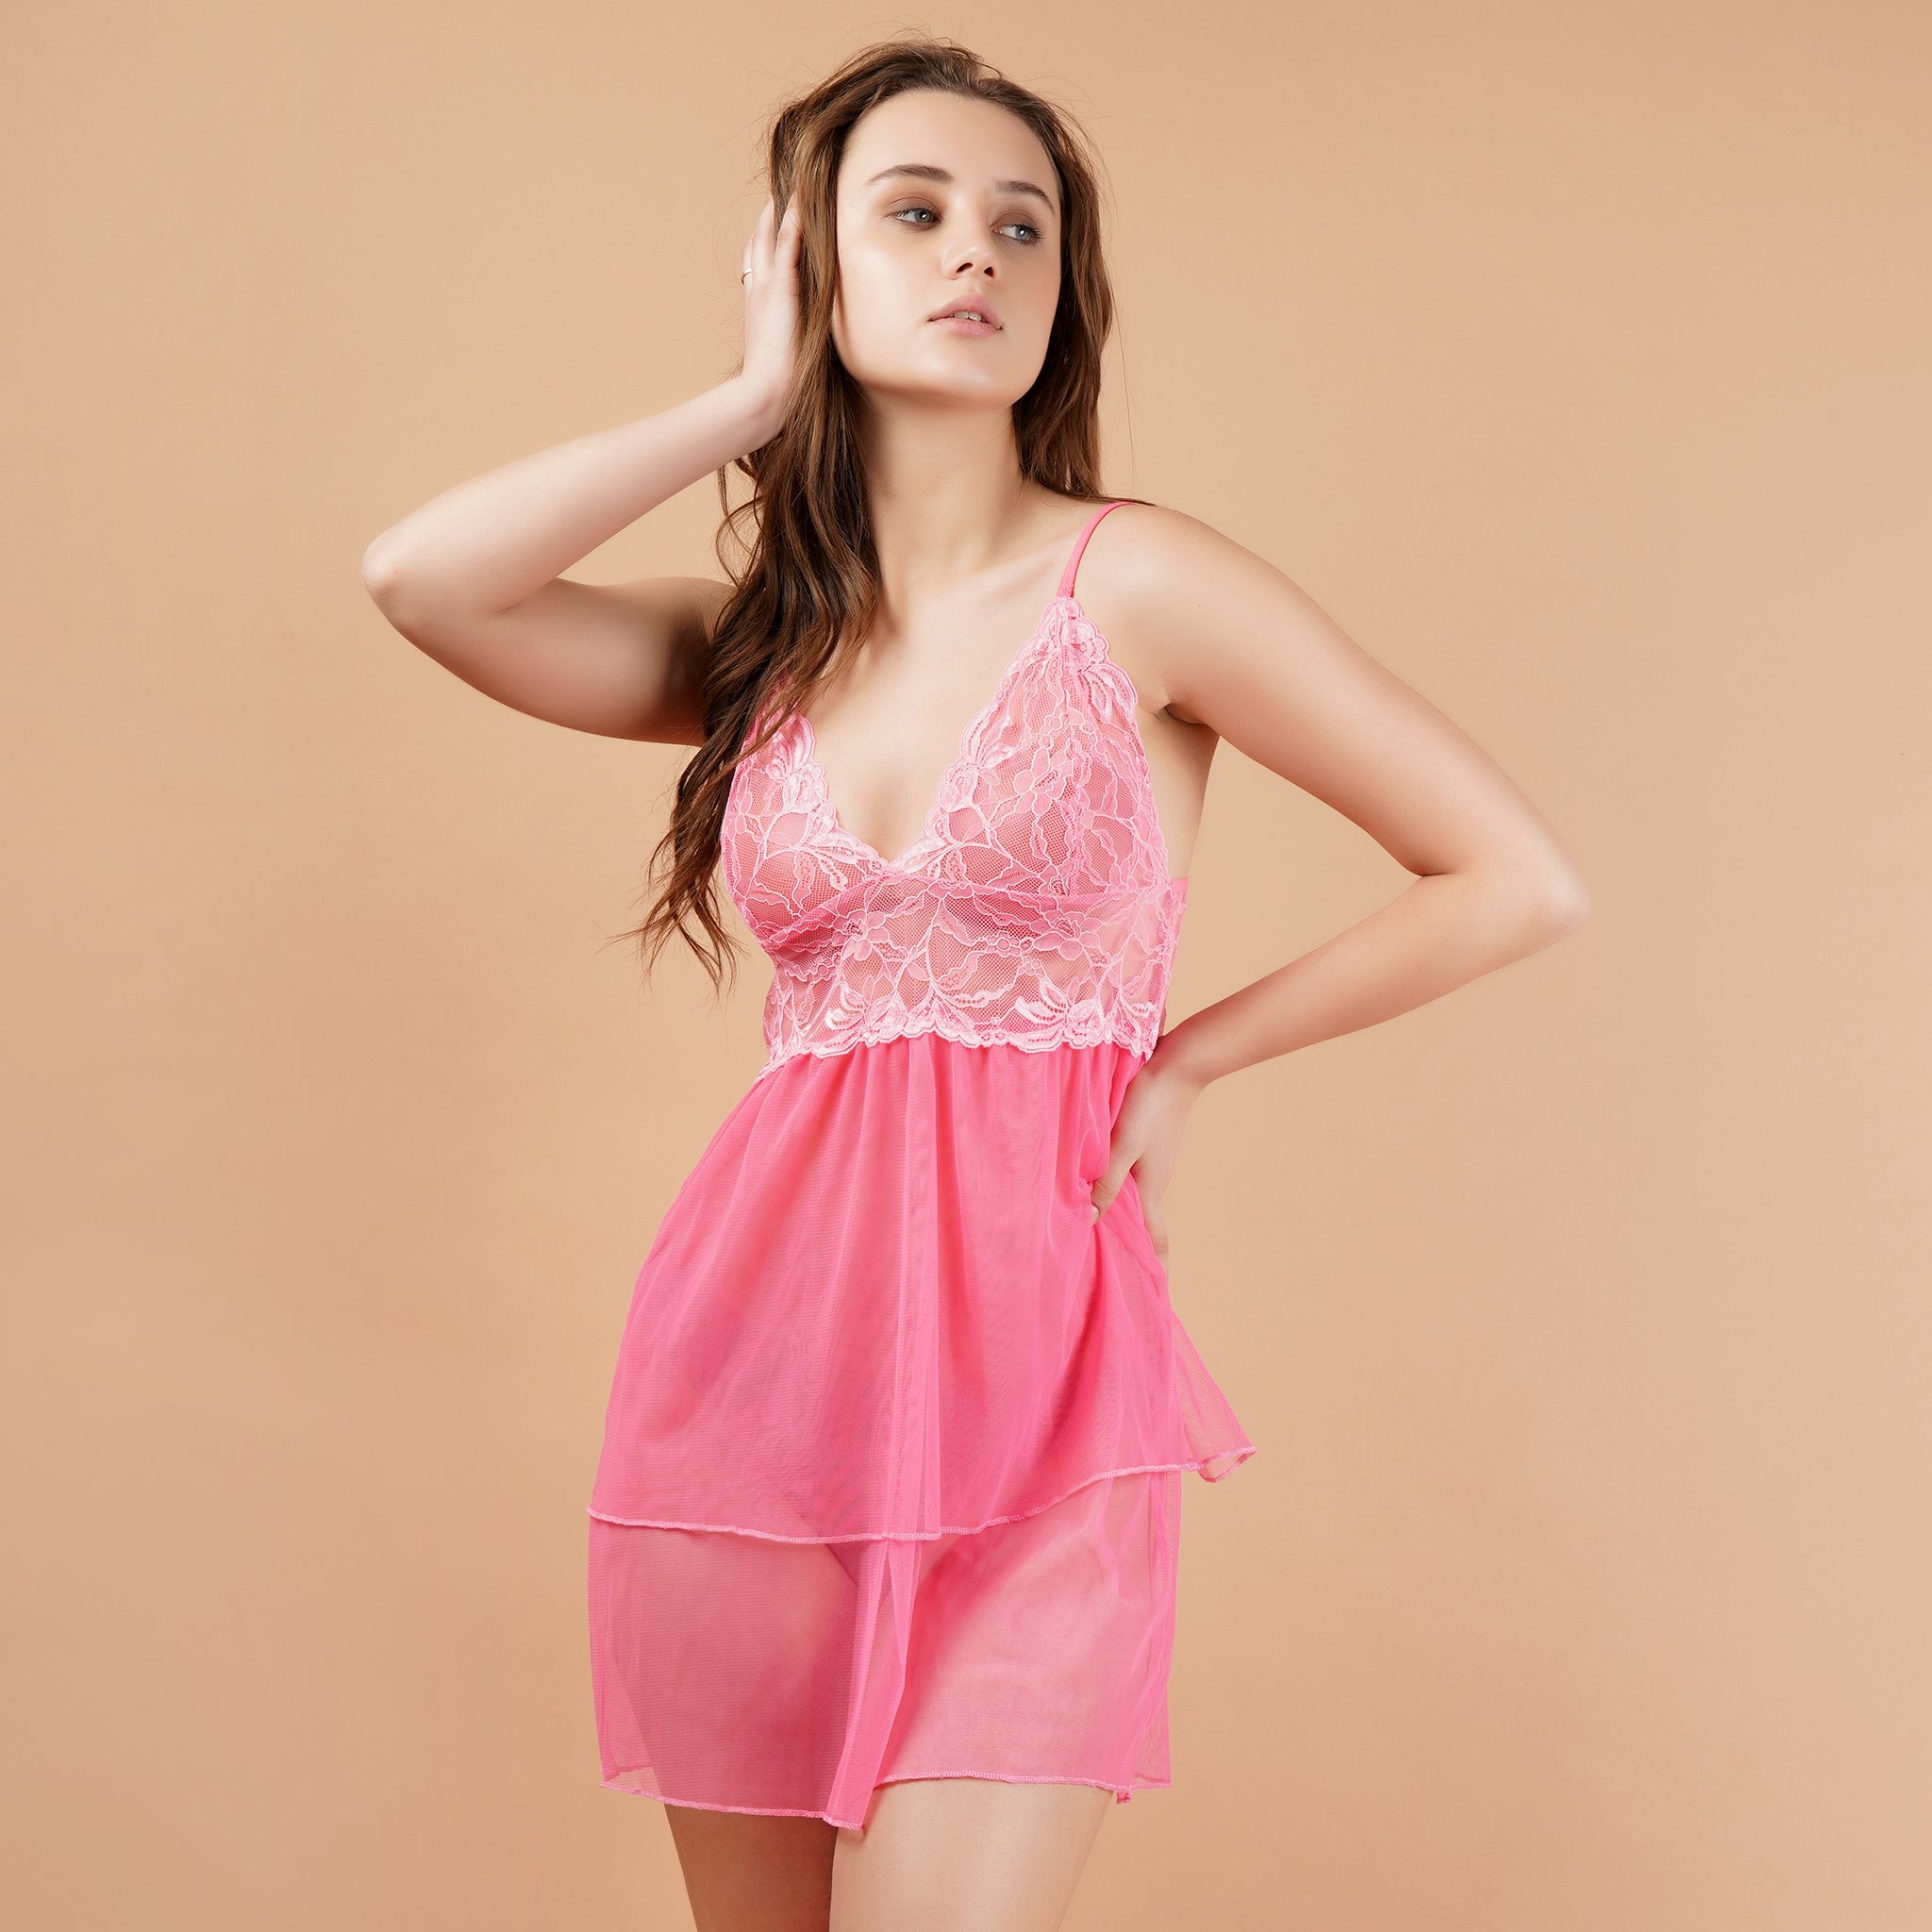 Ficuster Pink Cami Adjustable Straps Floral Lace Babydoll Nightwear